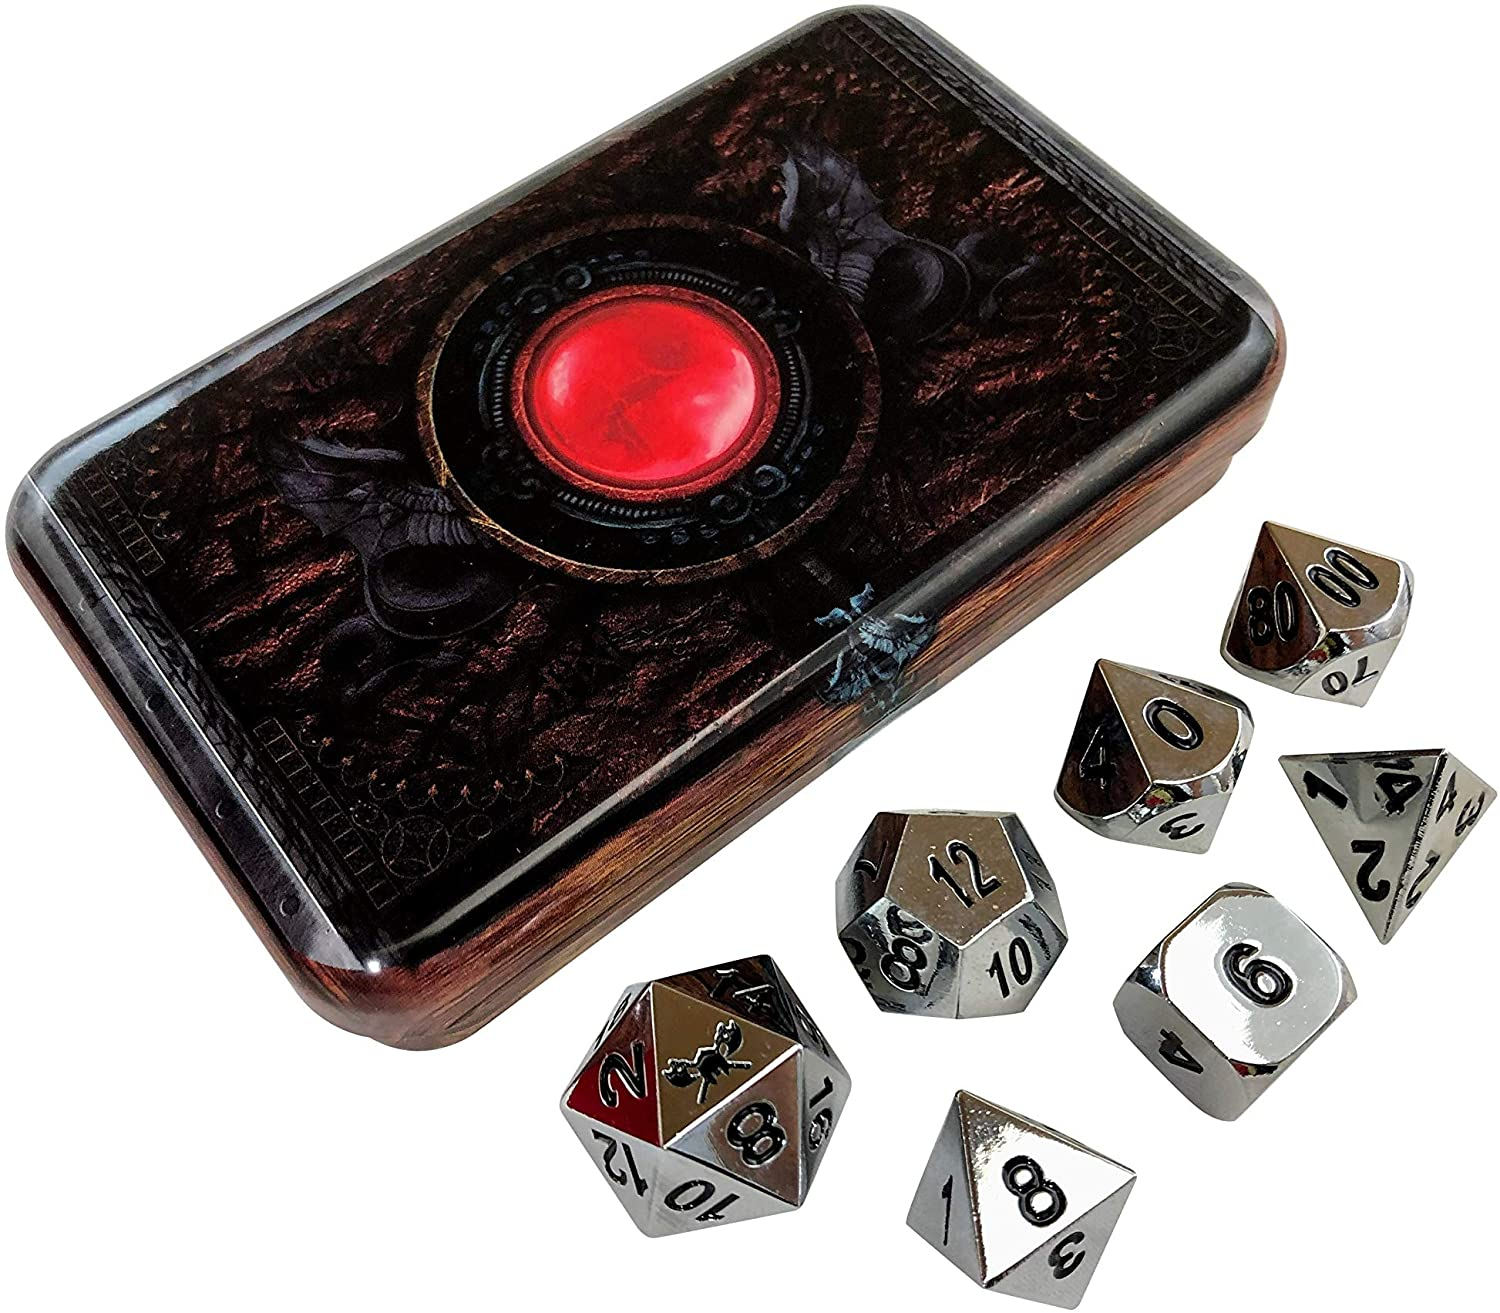 Warlock Tome Silver Chrome Color Metal RPG Polyhedral Dice Set of 7 with Dice Box for Dice Storage by SkullSplitter Dice